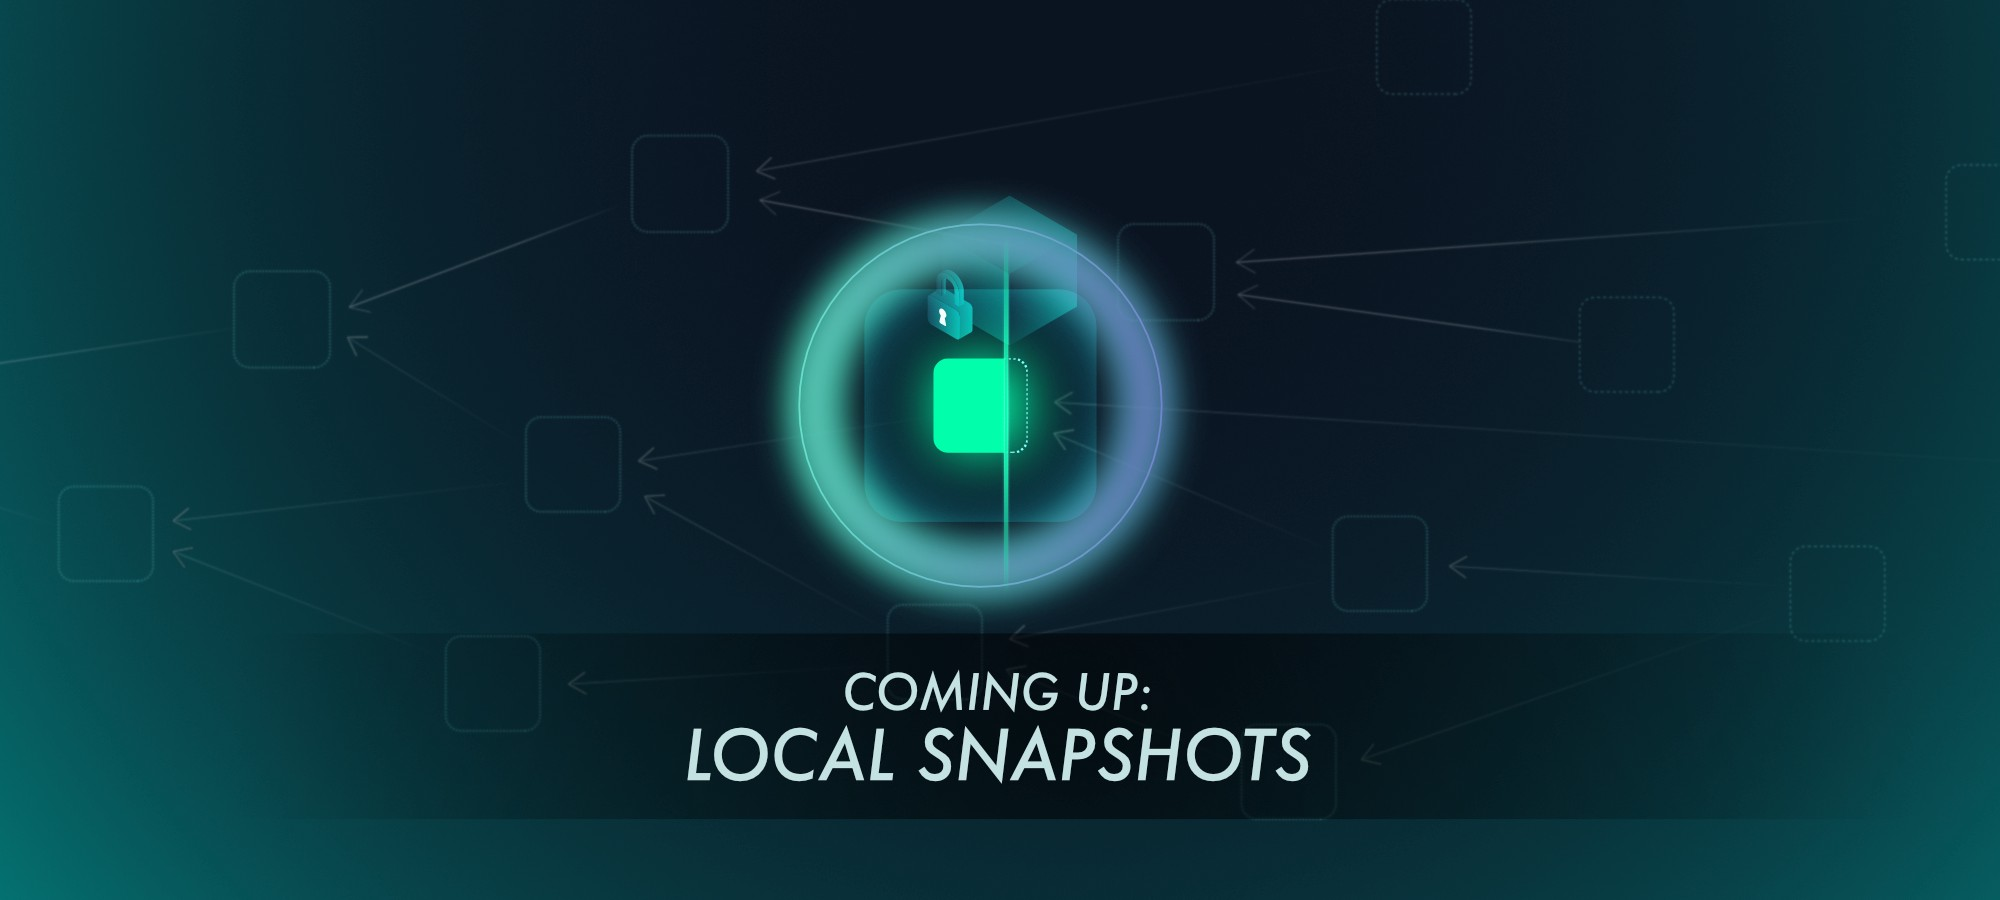 Coming Up: Local Snapshots